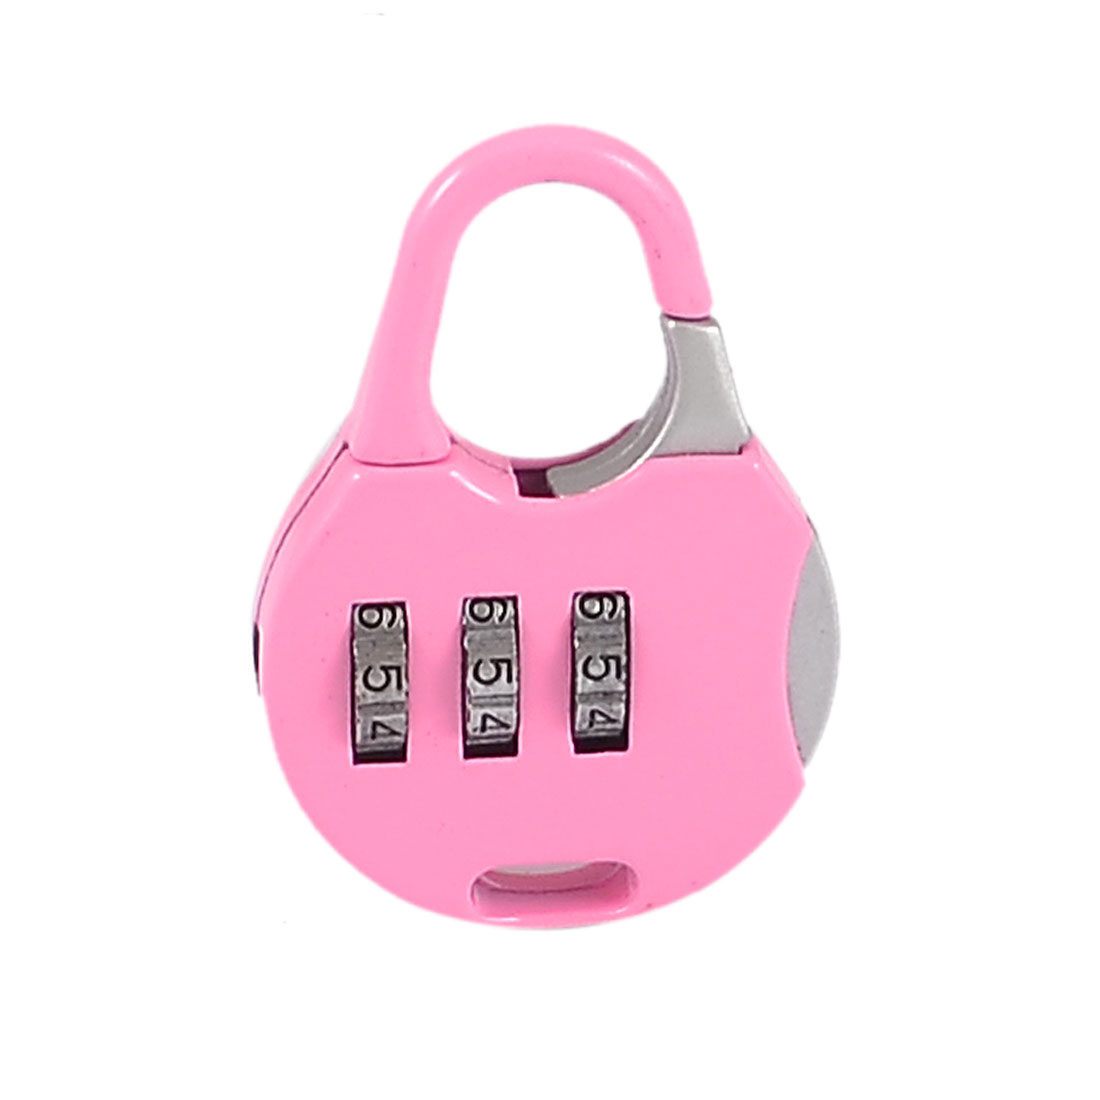 Metallic Pink Handbag Shaped 3 Digit 0-9 Number Combination Lock Padlock